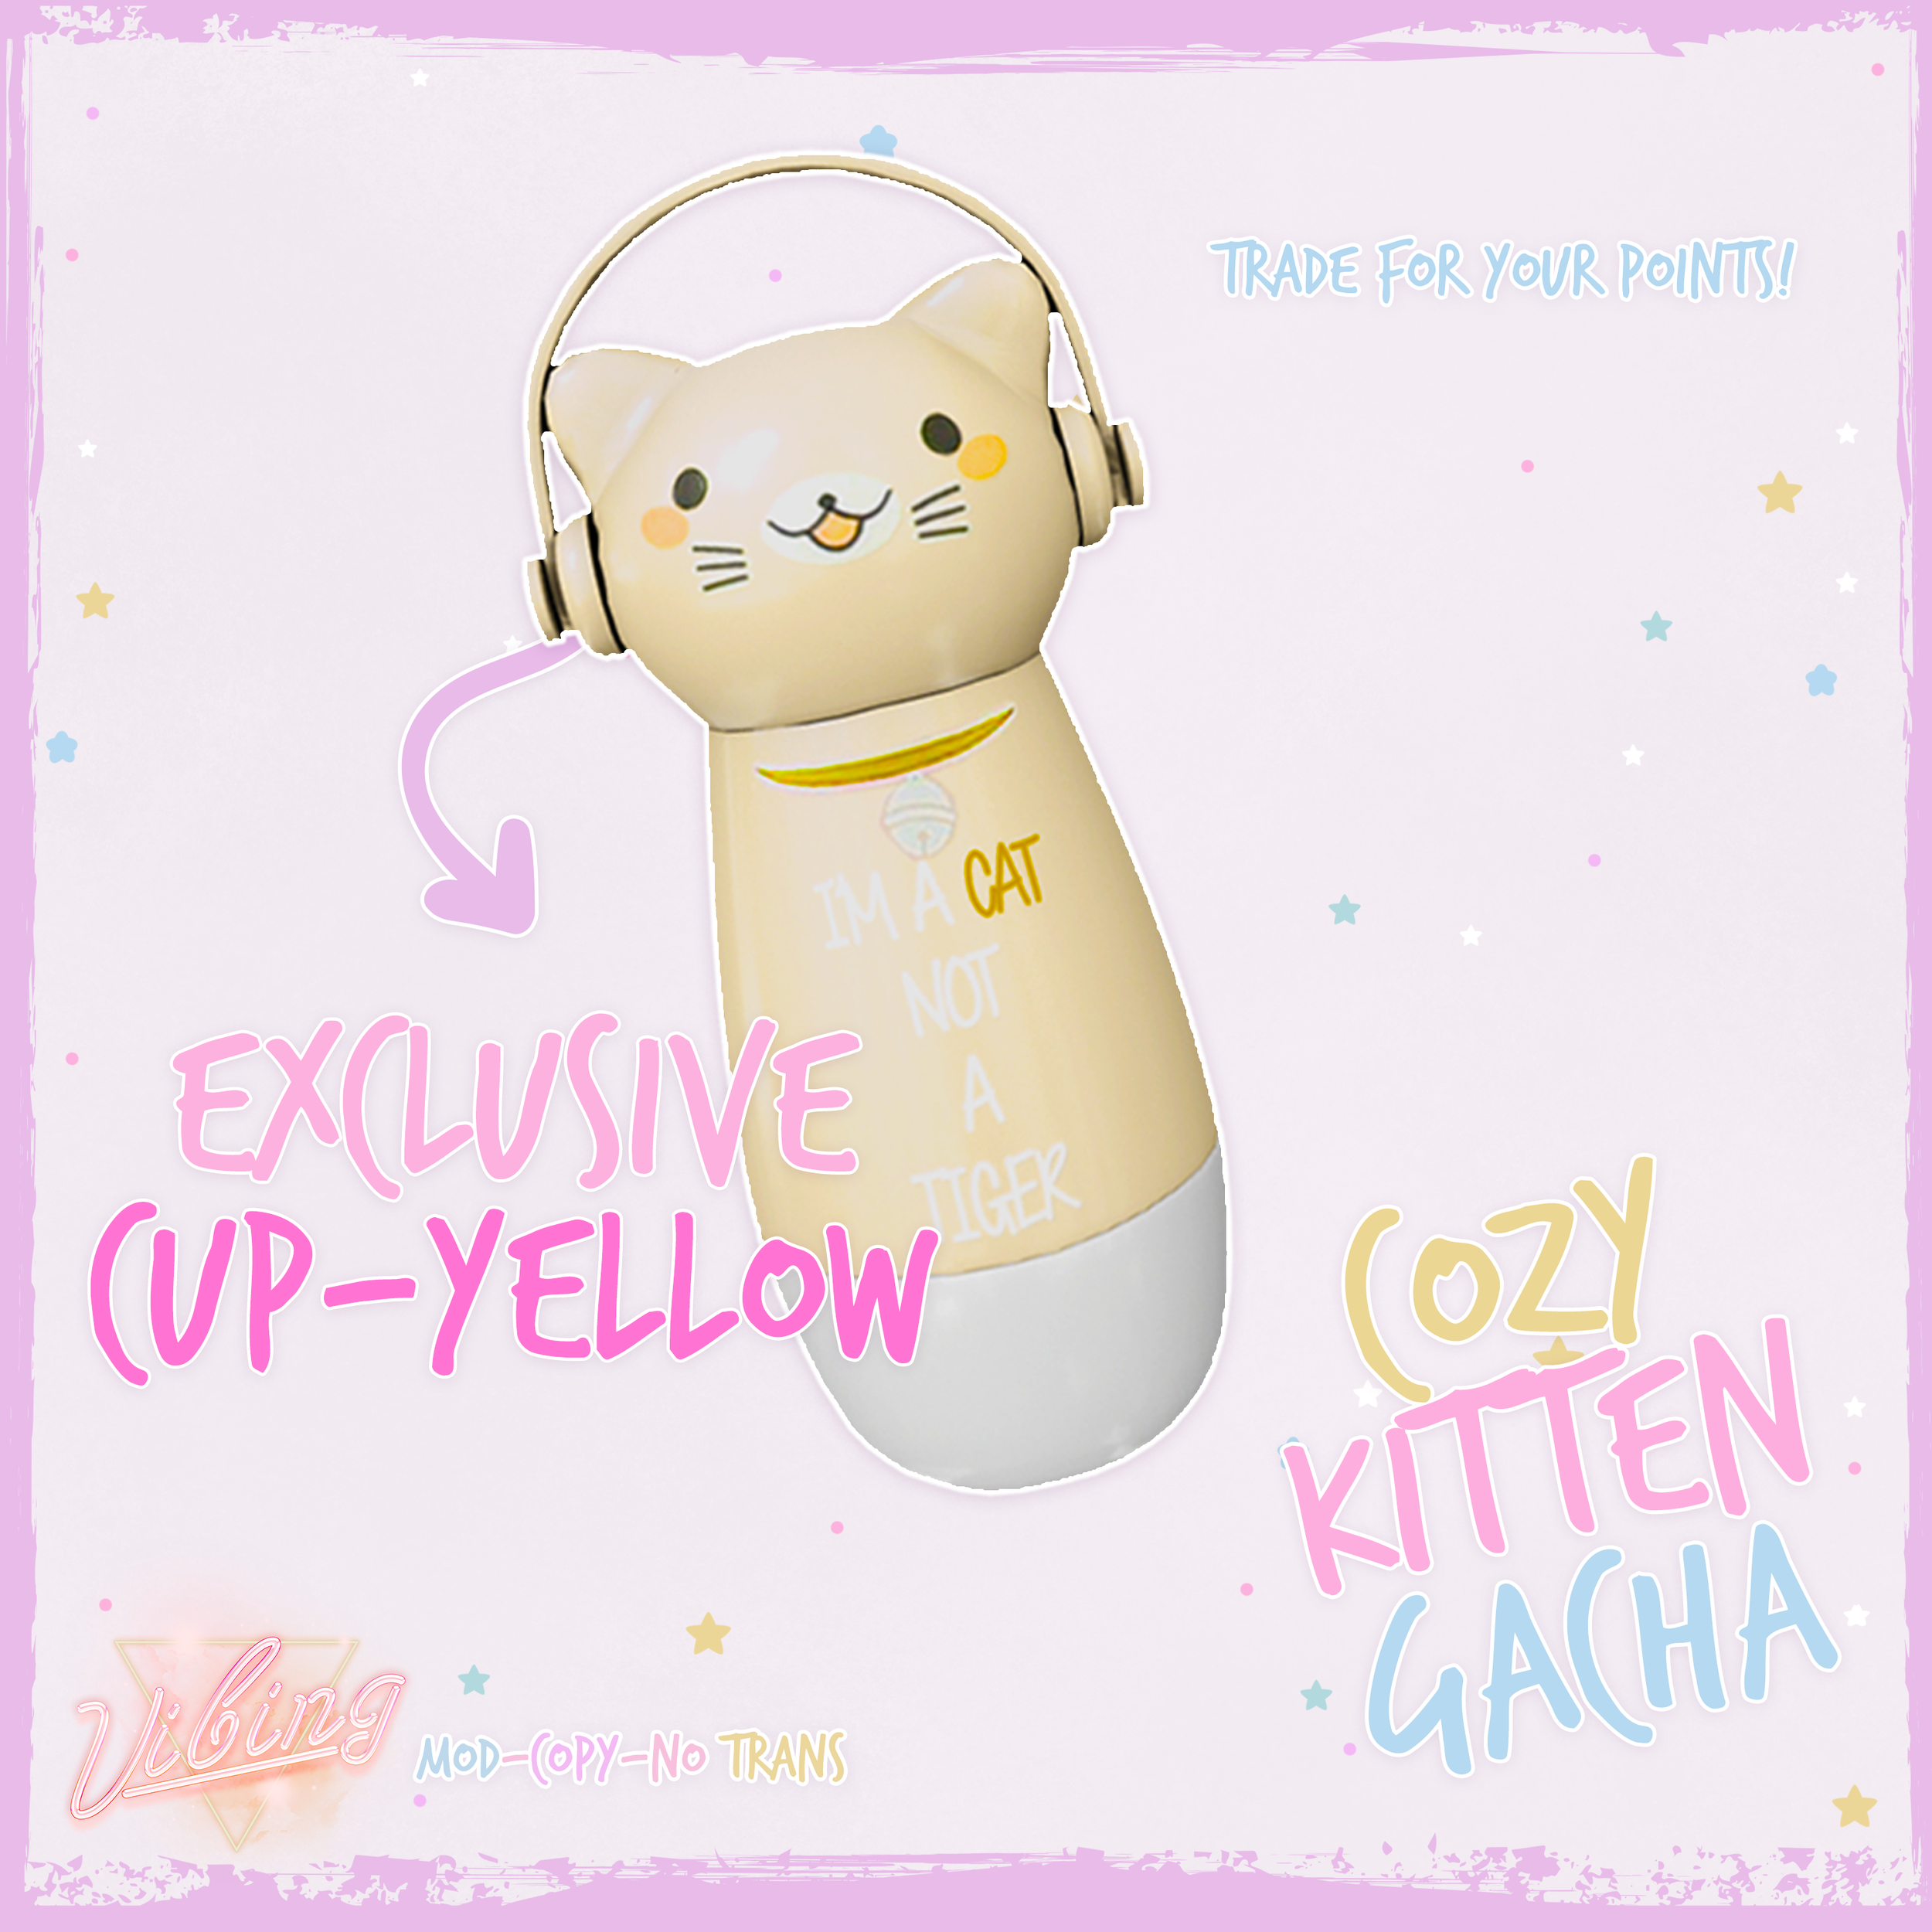 exclusivecozykitten.png